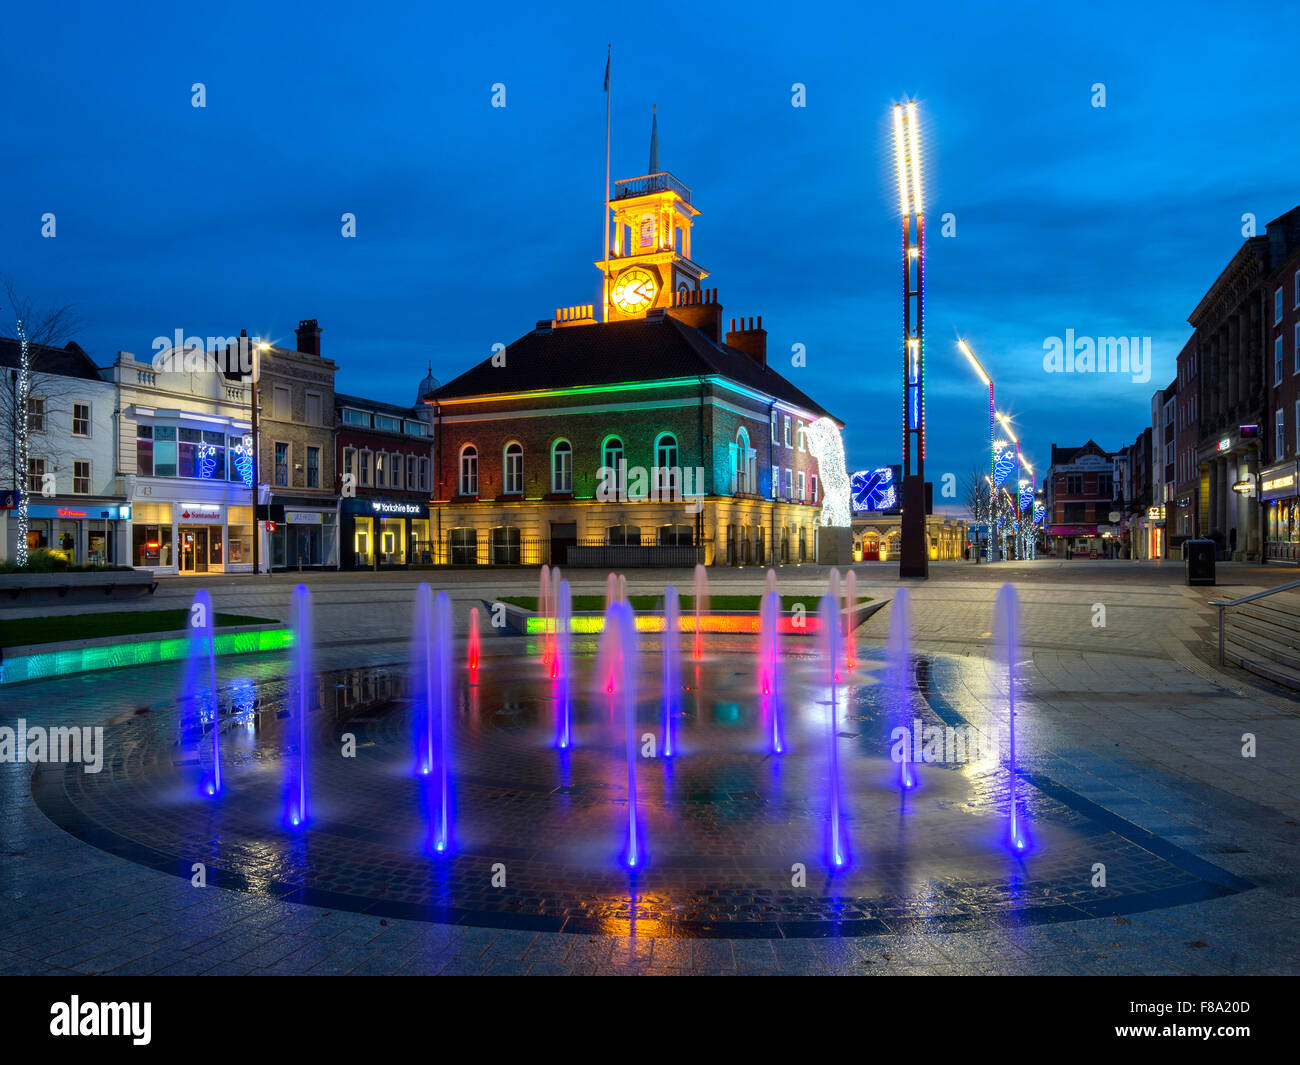 A view at dusk at Christmas of the Town Hall on the High Street in Stockton on Tees seen through the illuminated - Stock Image